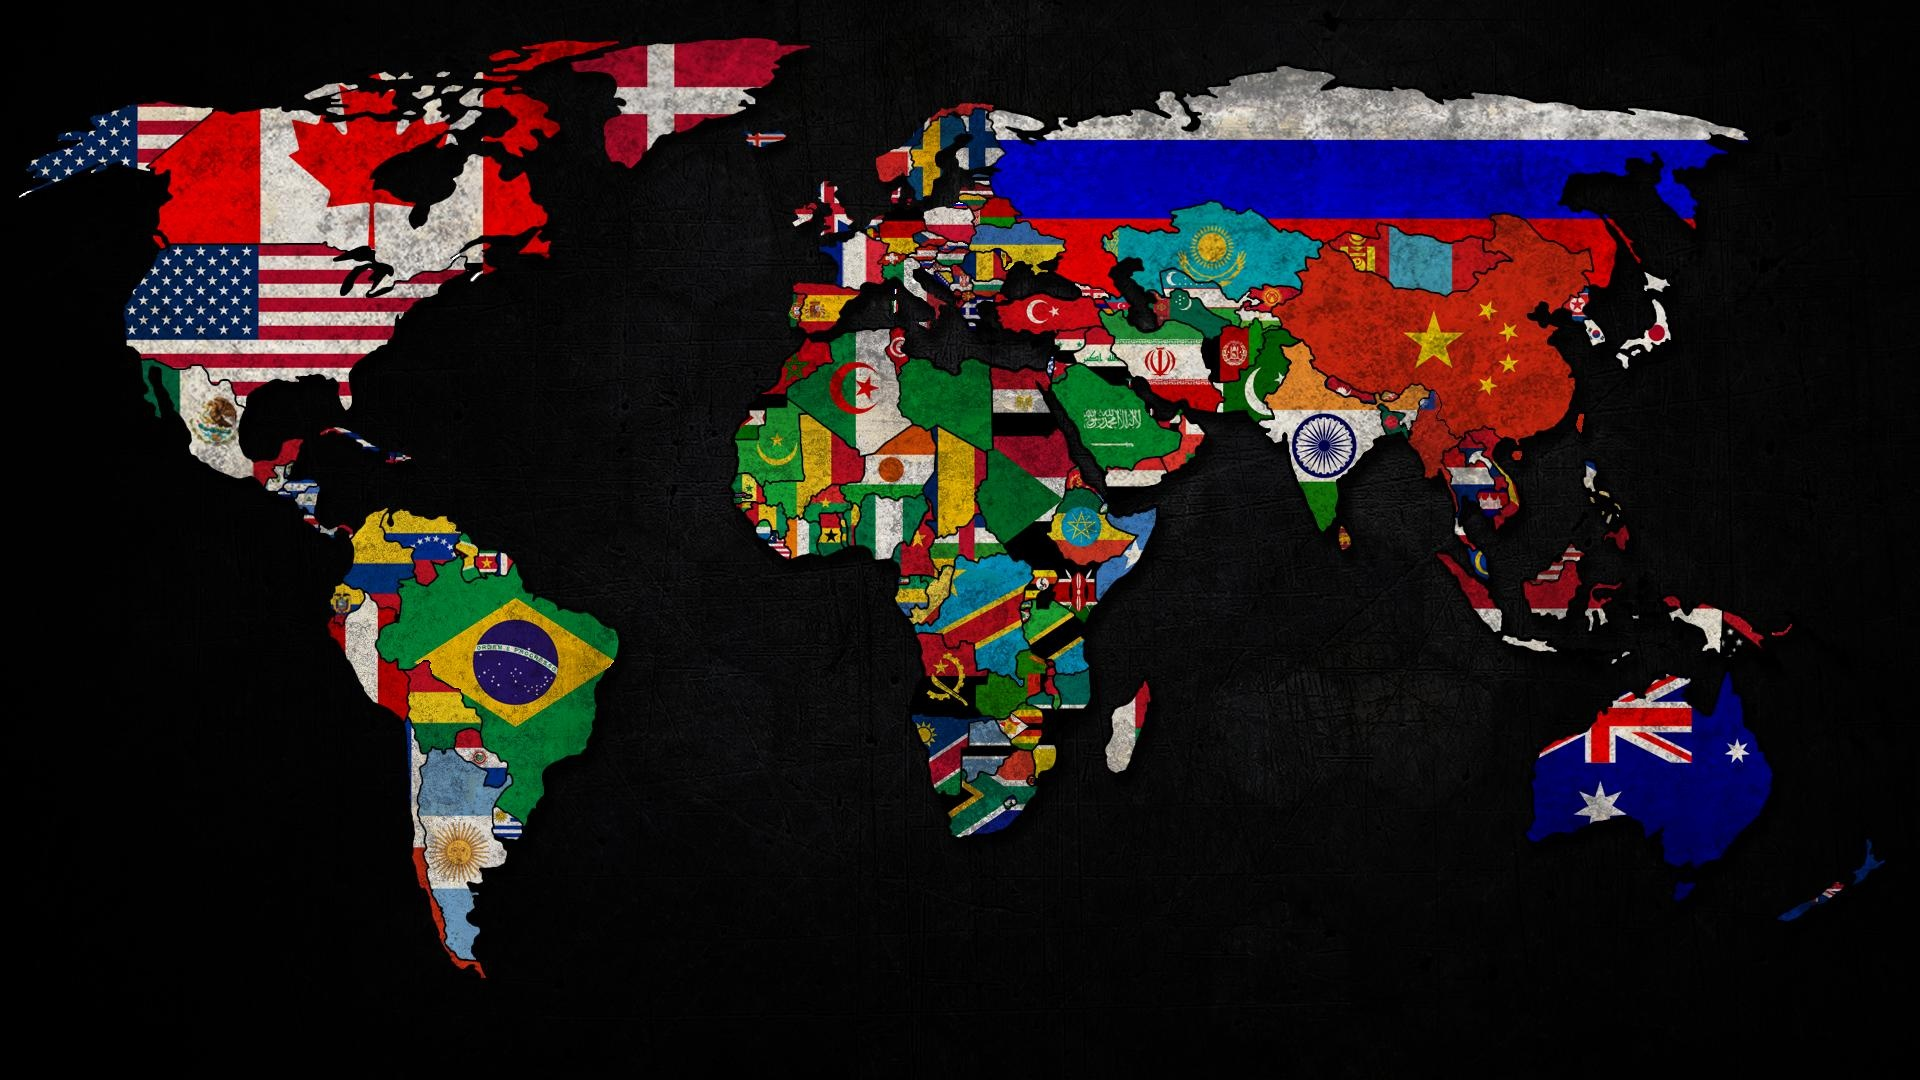 World map with flag logo Wallpaper 1920x1080 Full HD resolution wallpaper d